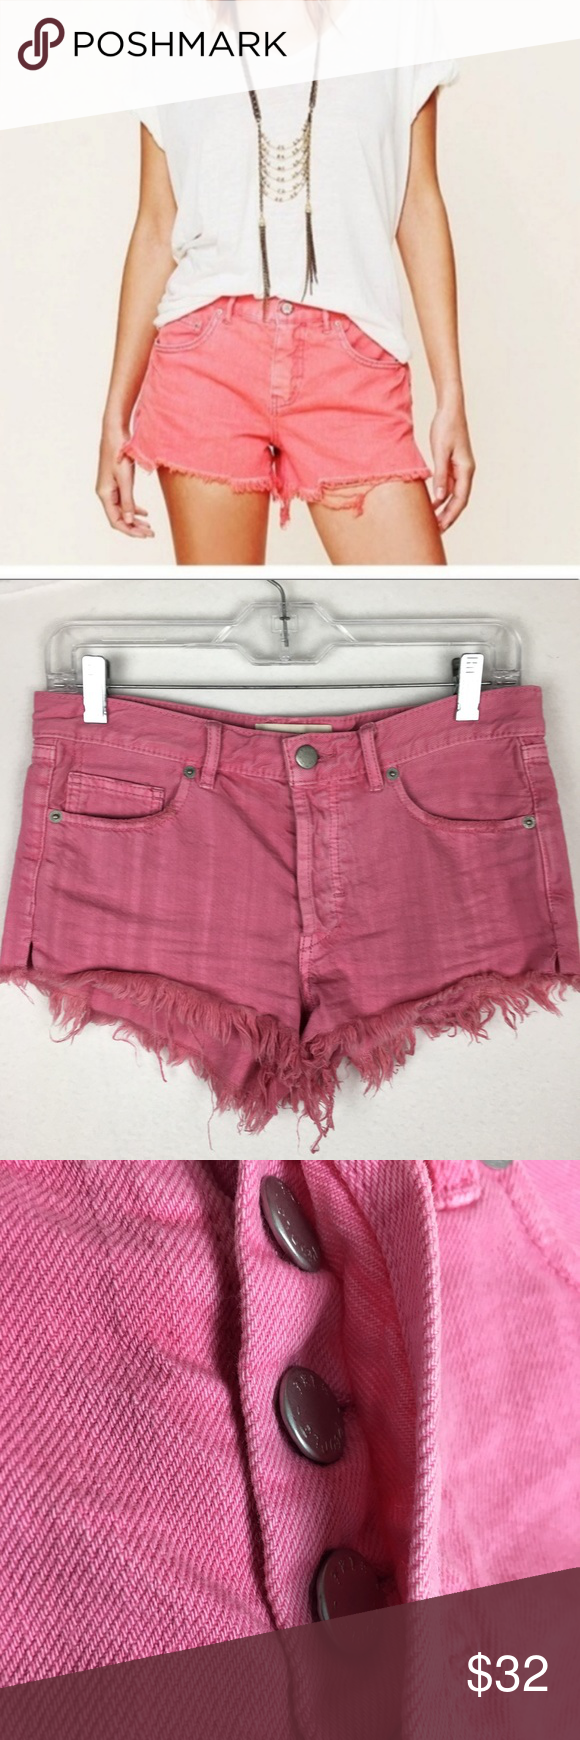 Free People Pink Denim Cutoff Shorts size 25 Free People ( We The Free)  Pink Denim Cutoff Shorts size 25 15.5 waist 9 rise 2 length * Stock photo demonstrates style.  Please see actual photos for exact  color shade  FF17-0451 Free People Shorts Jean Shorts #denimcutoffshorts